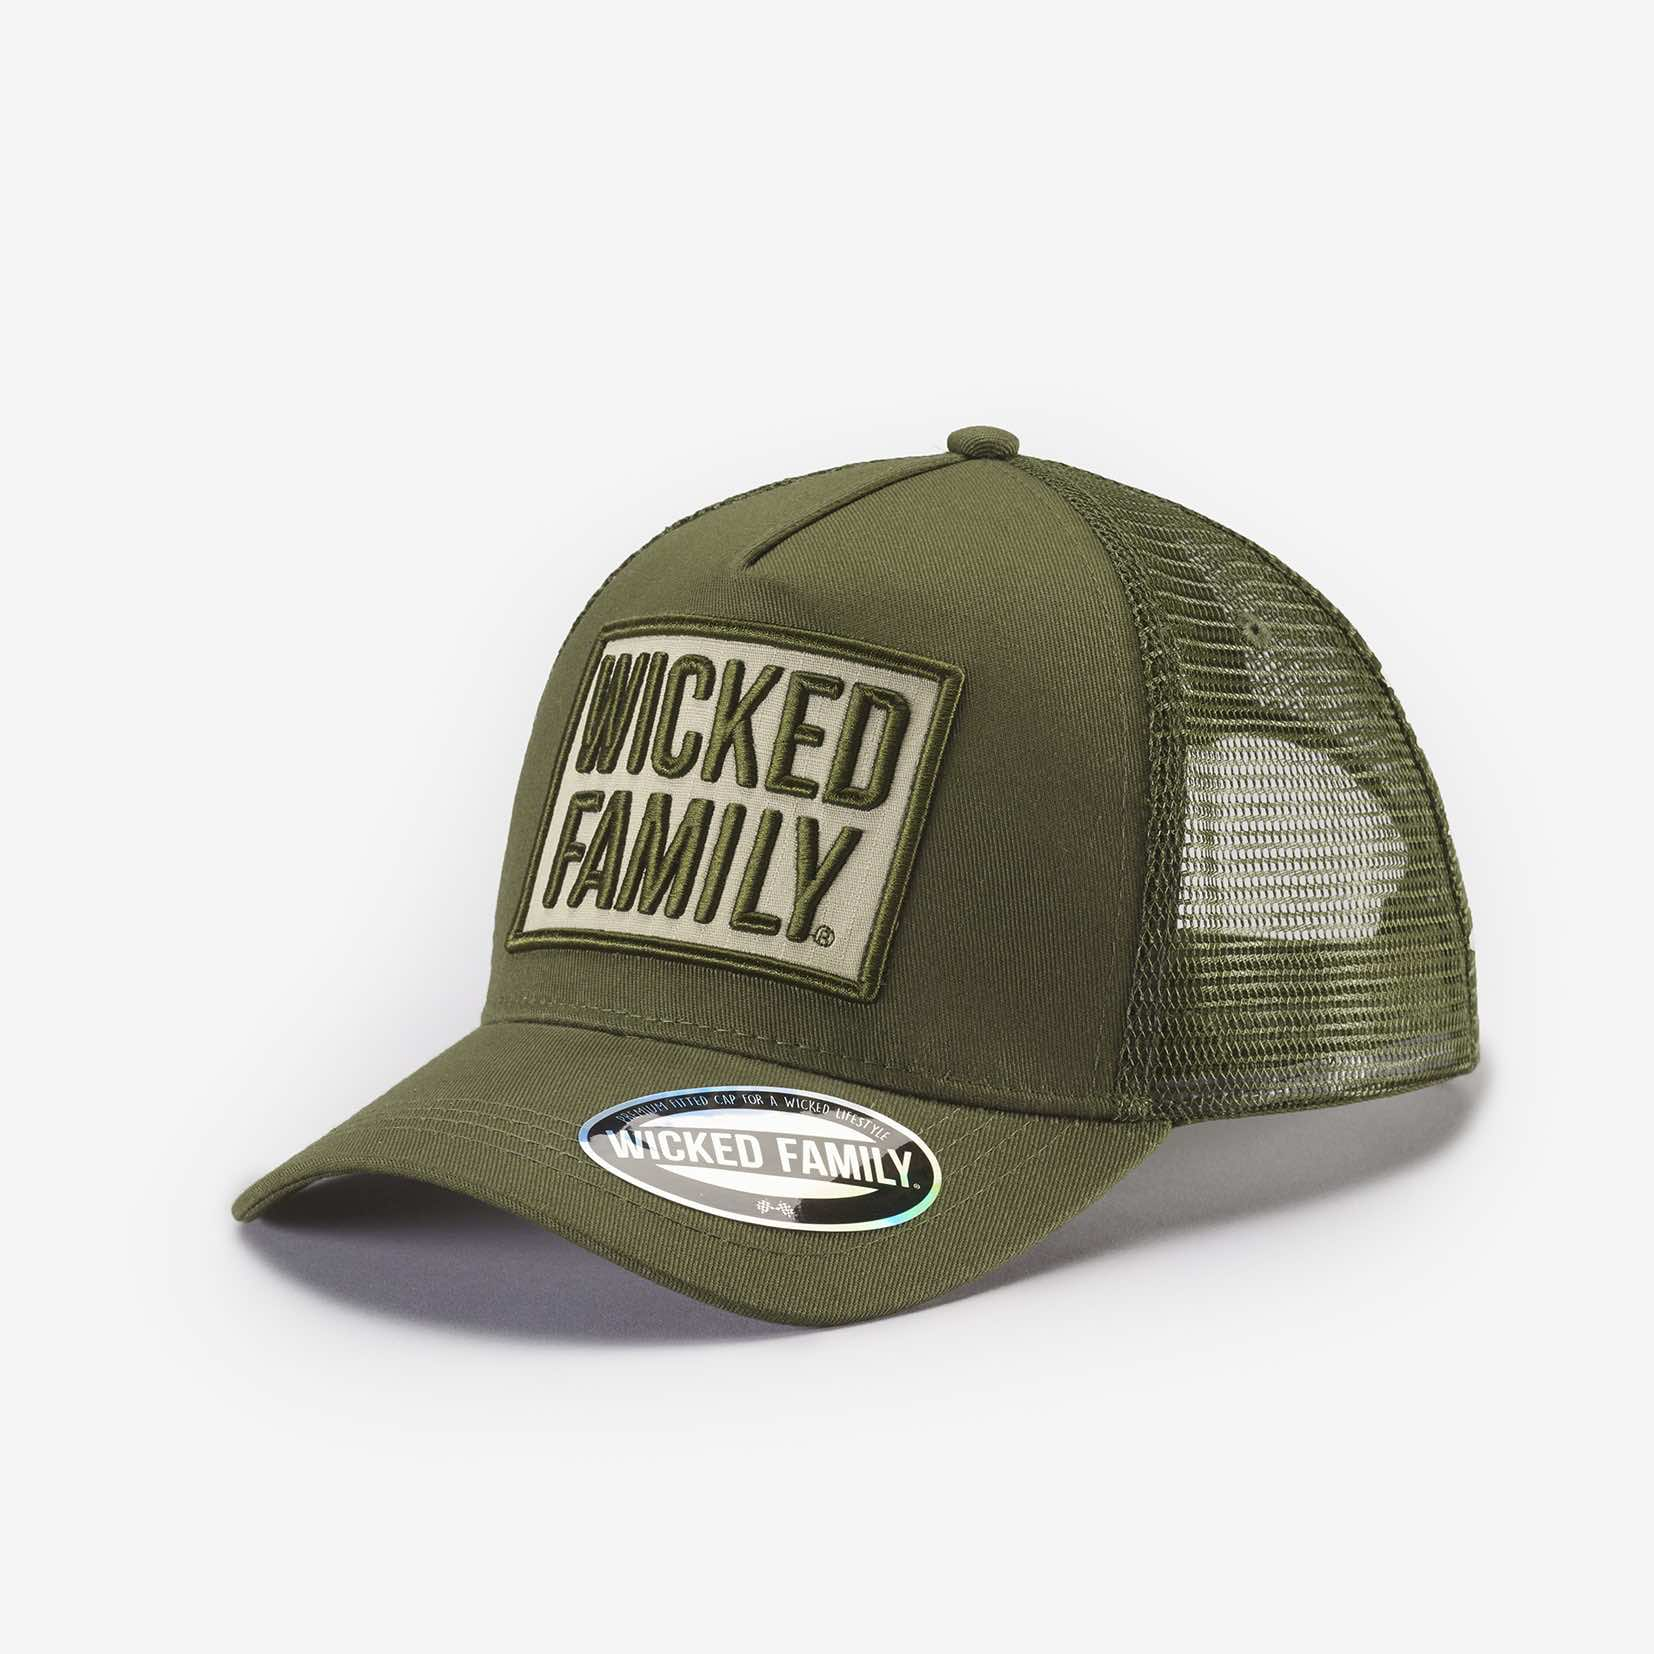 a6638fd8d84a9 WICKED FAMILY green hat - The Wicked Family